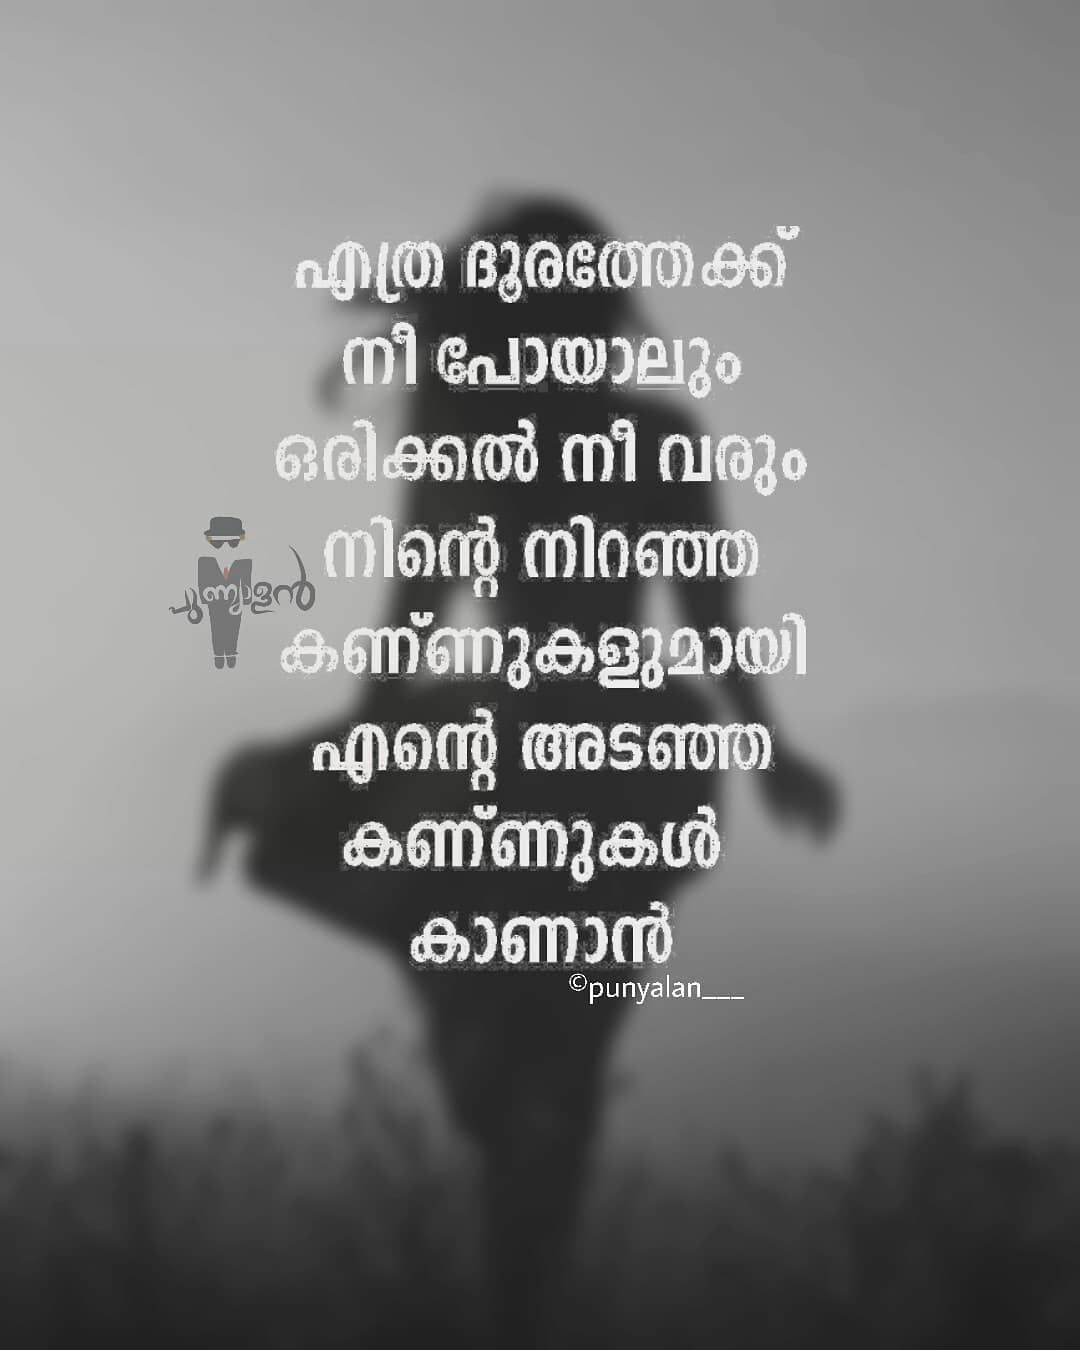 Malayalam Feelings Quotes Love Alone Branthan Punyalan Instamood À´ªà´±à´¯ À´¤ À´‡à´° À´• À´• Àµ» À´µà´¯ À´¯ Waiting Quotes Life Quotes Heart Quotes